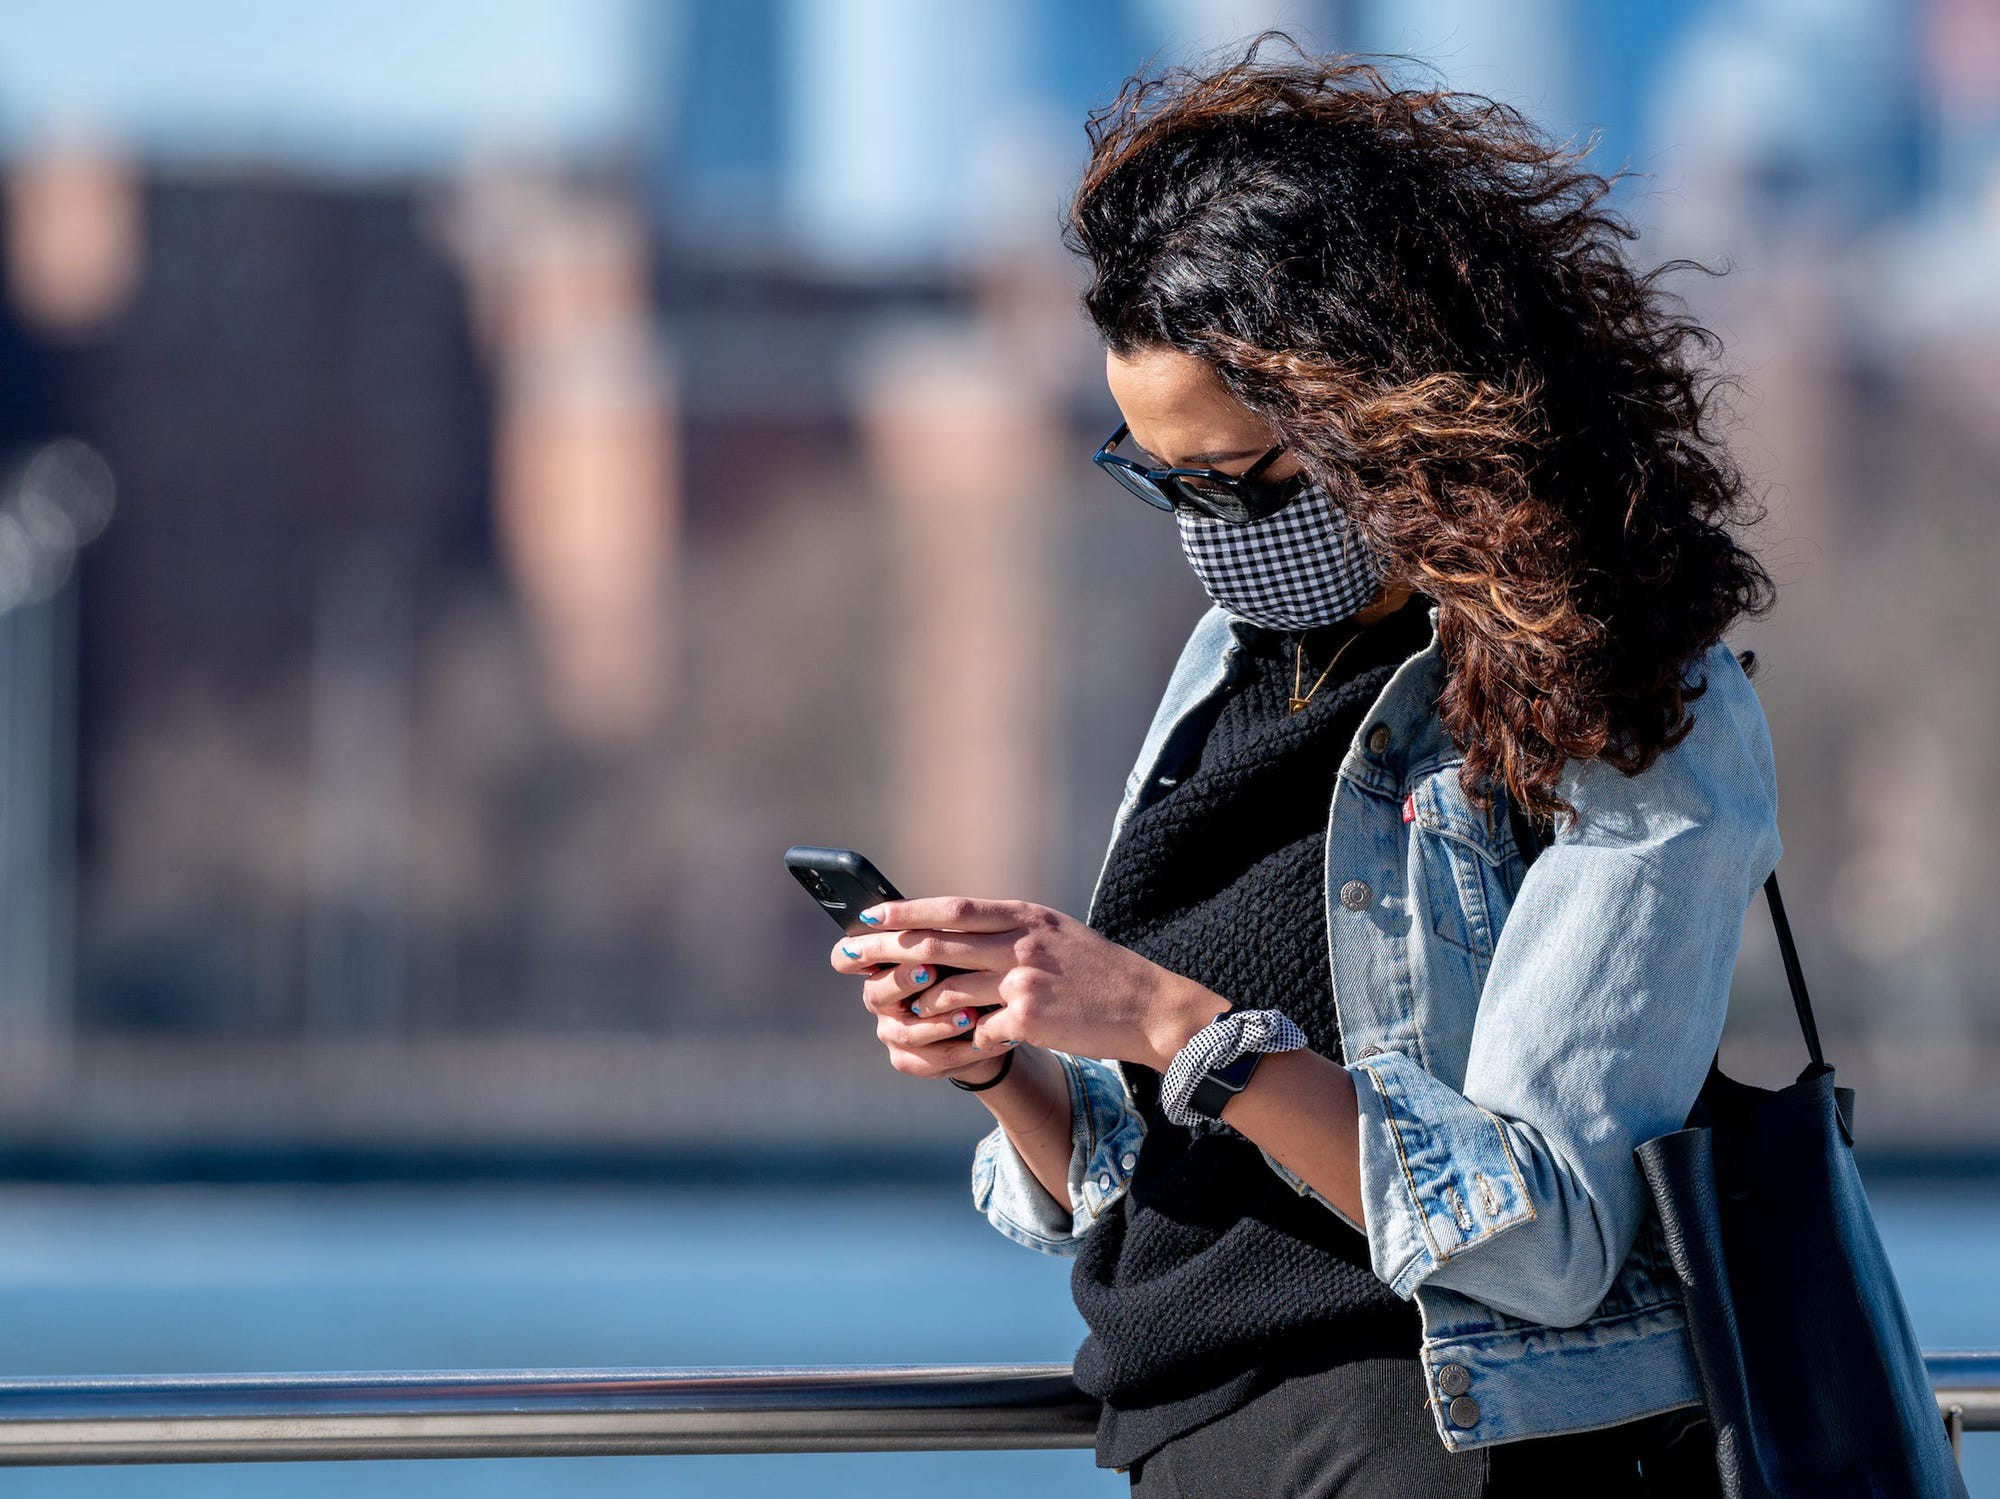 An individual using a cellphone.